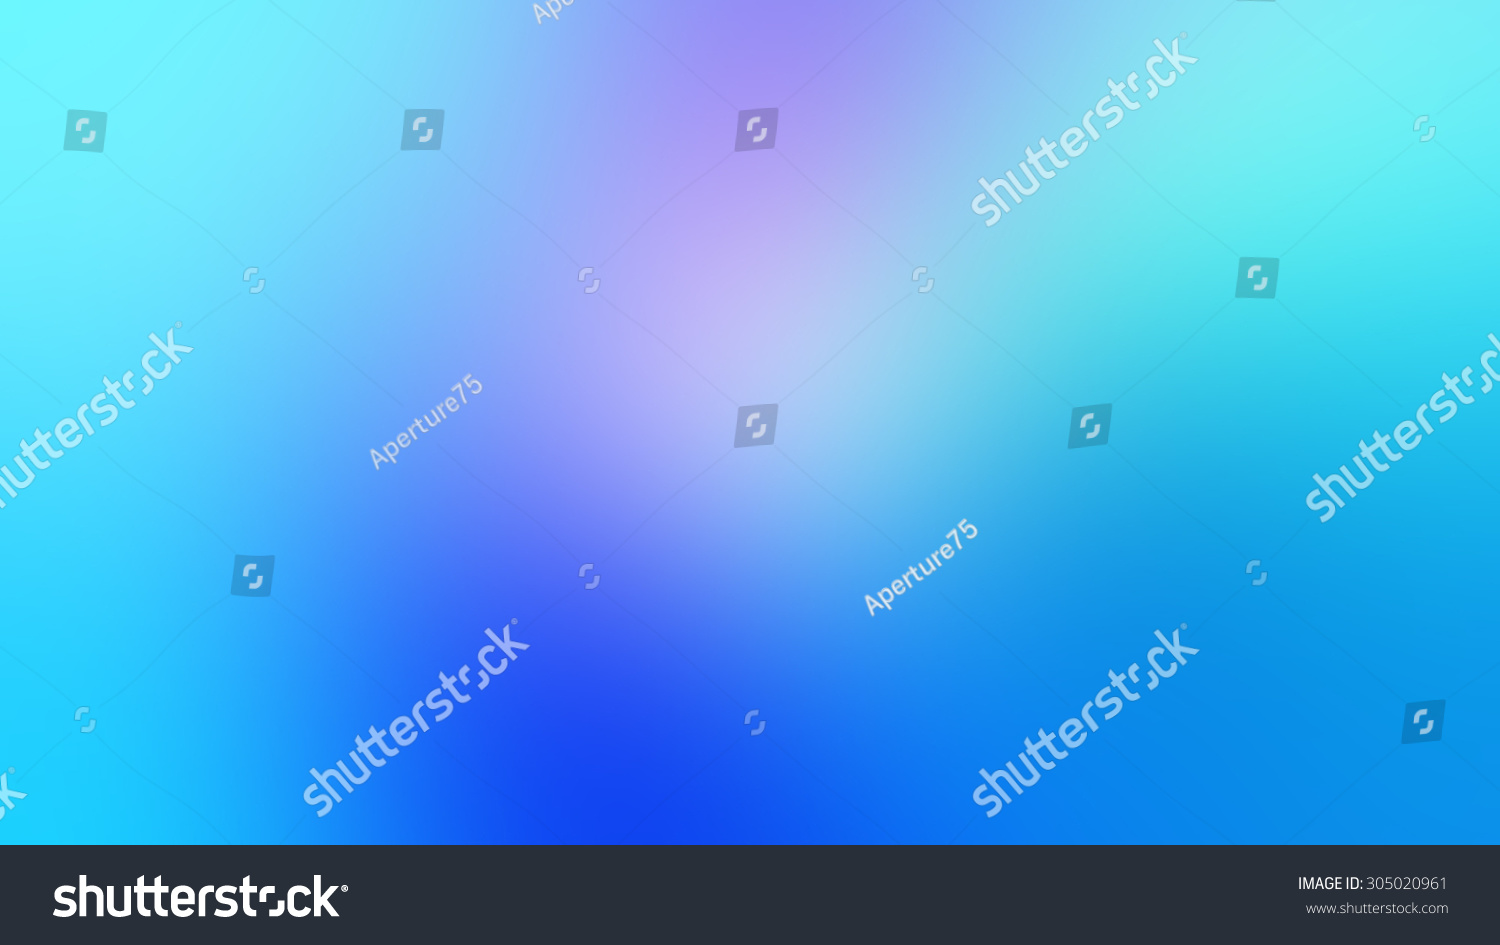 Blue Shade Of A Gradient Background And Wallpaper